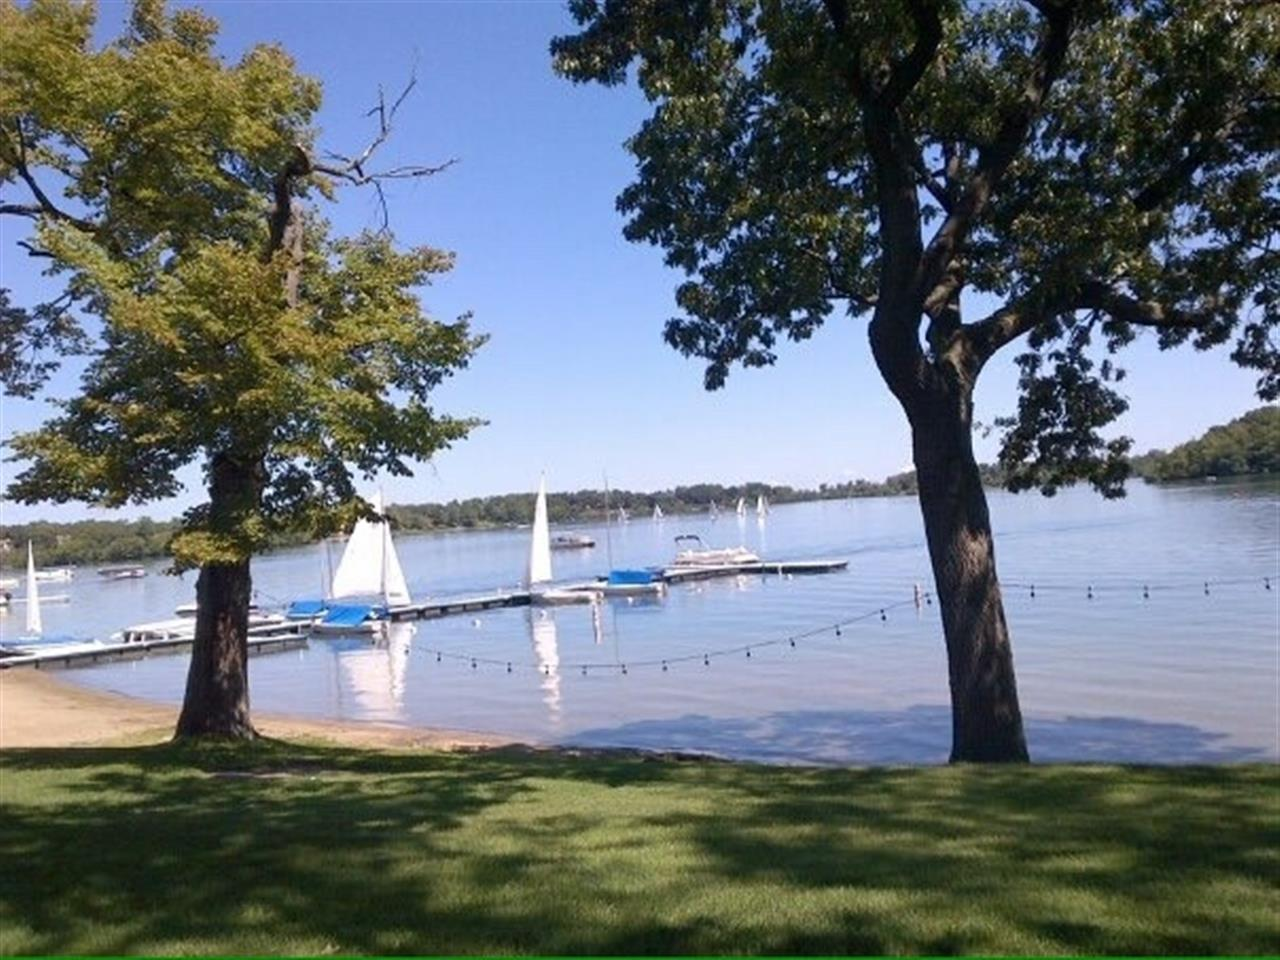 Summer water fun at Orchard Lake Country Club ~ Orchard Lake, Michigan #LeadingRElocal  #OrchardLake #Michigan